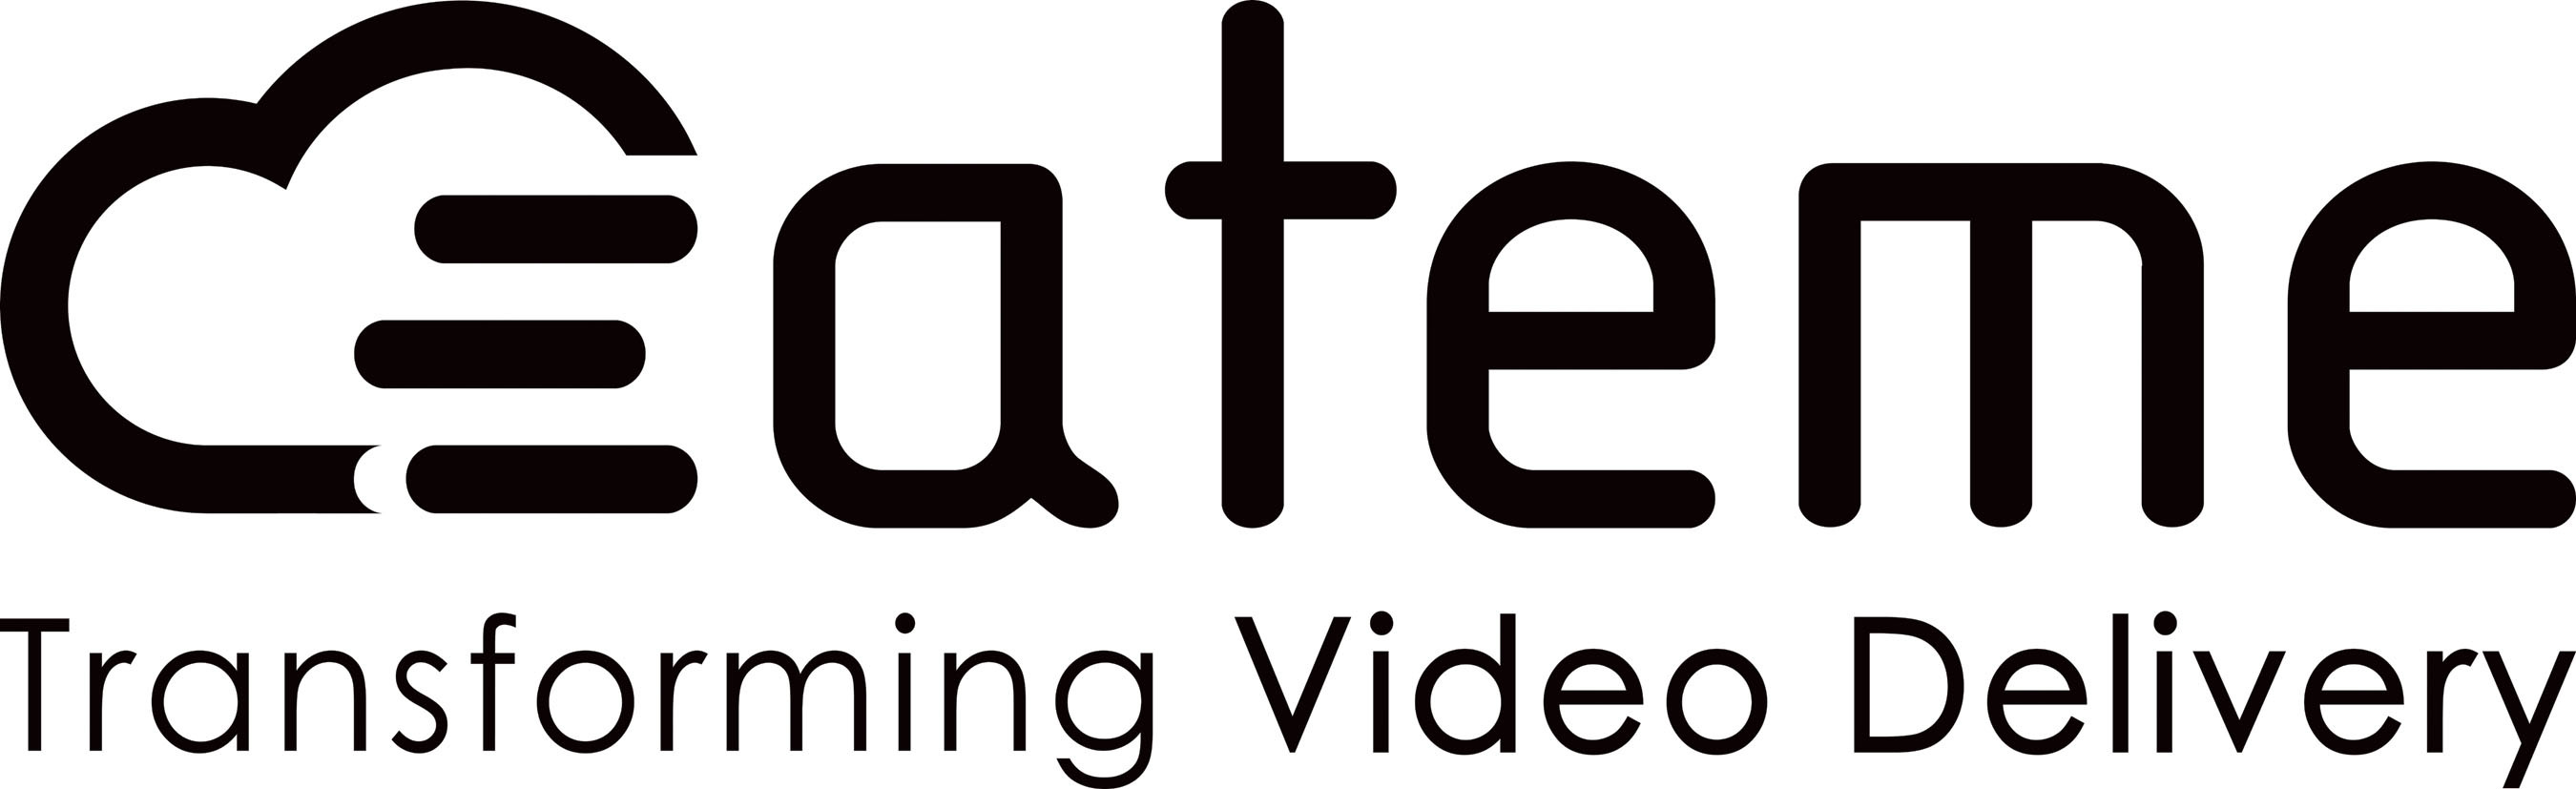 ATEME Gains Momentum with Service Providers: Hainan Network TV Deploys Live STB and OTT IPTV Service